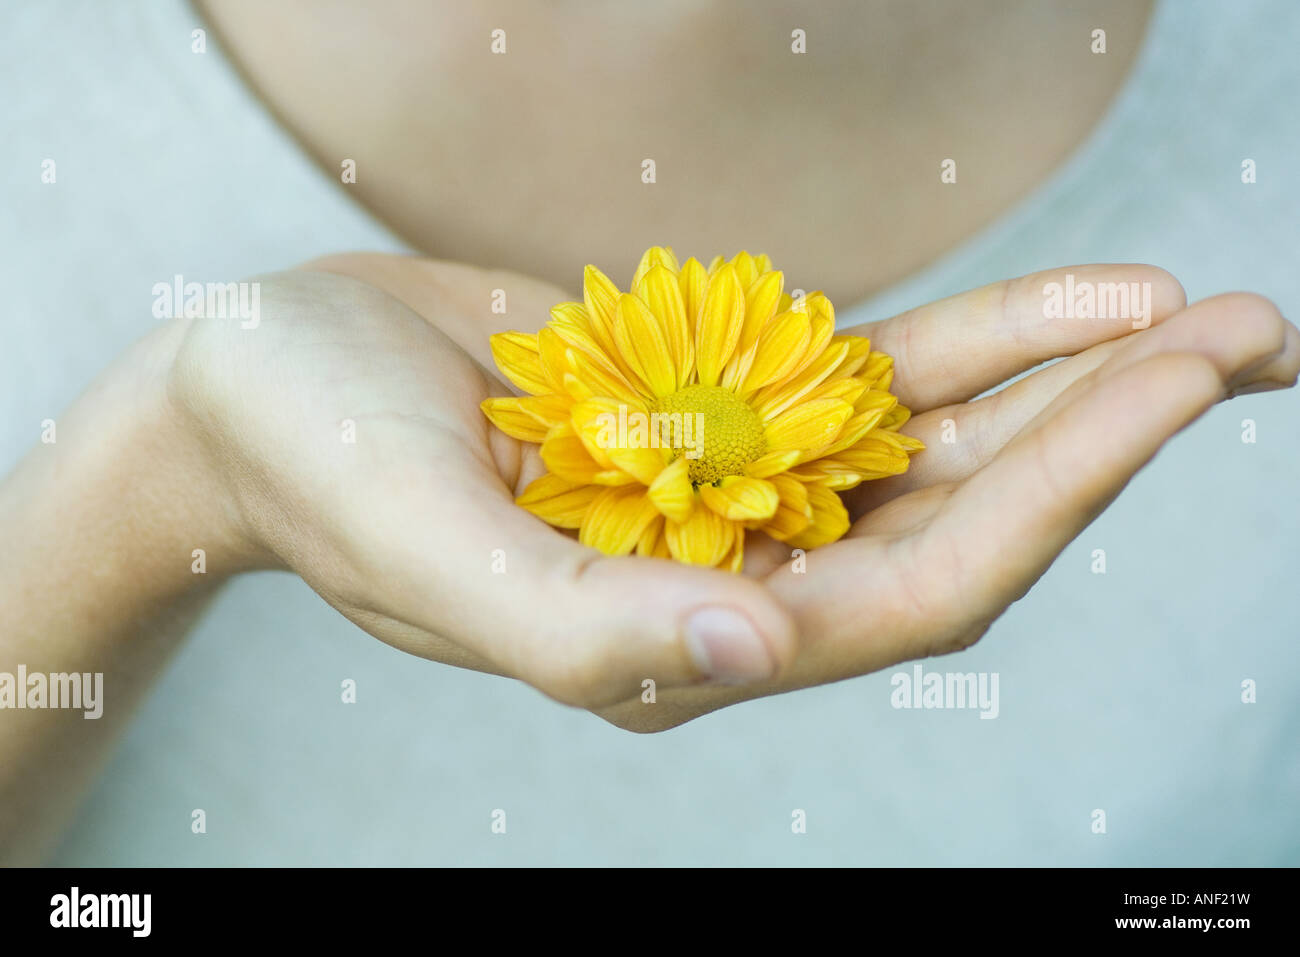 Woman holding flower in cupped hand, close-up - Stock Image